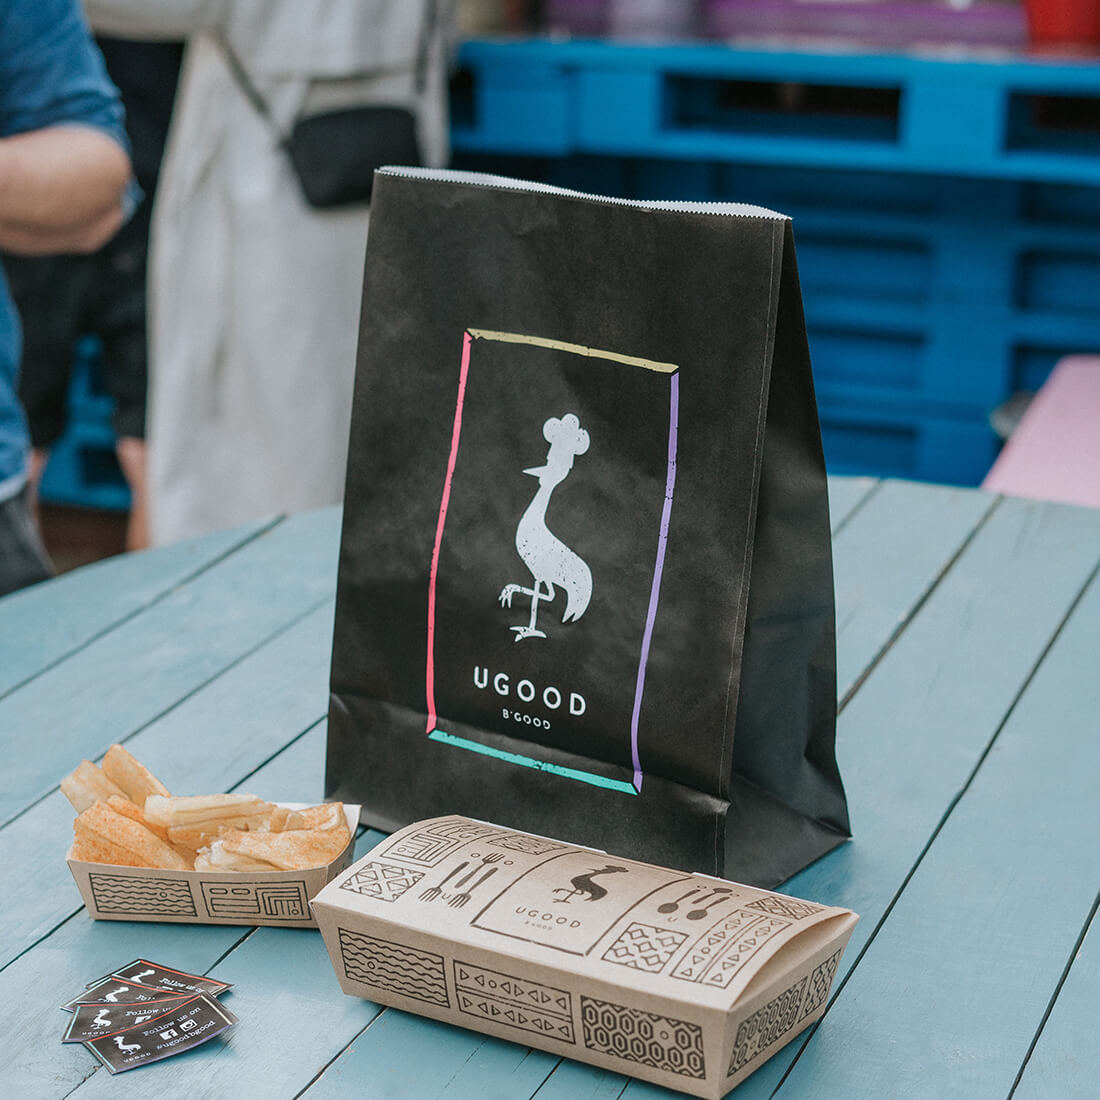 A set of paper packaging made for Ugood street food, characterized by an interesting print and multi-colored print on a paper bag.